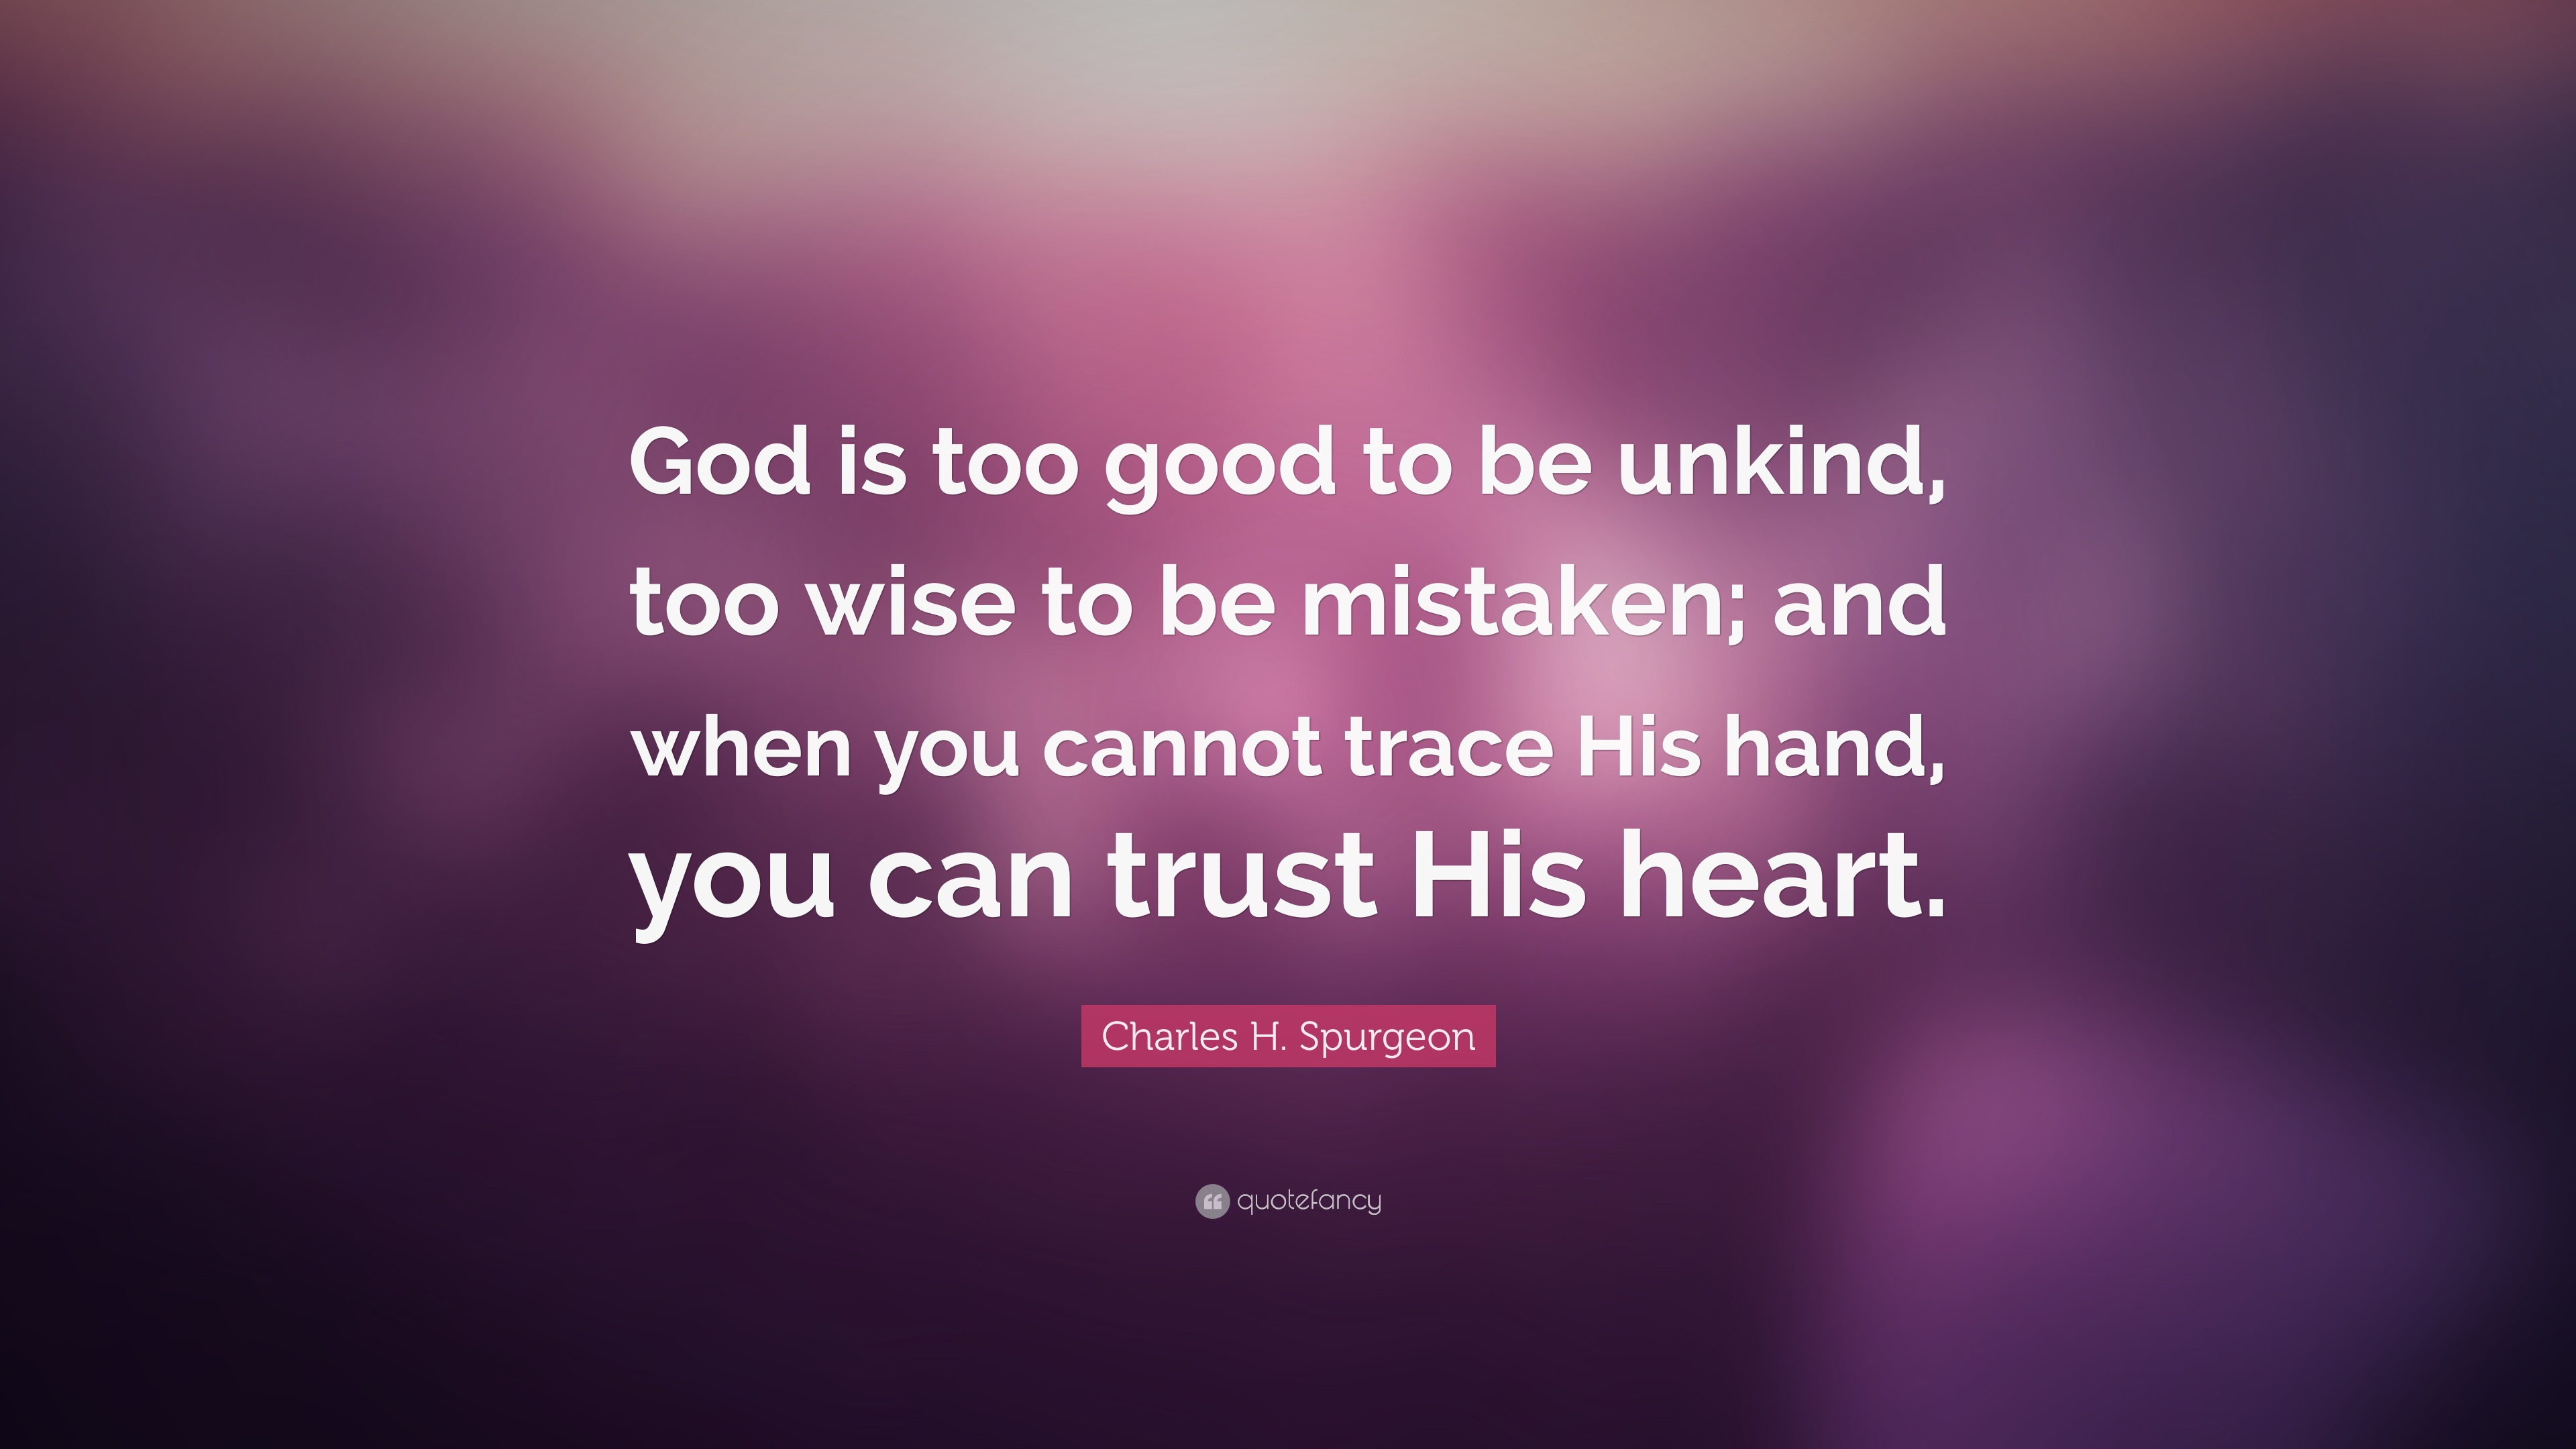 Charles H Spurgeon Quote God Is Too Good To Be Unkind Too Wise